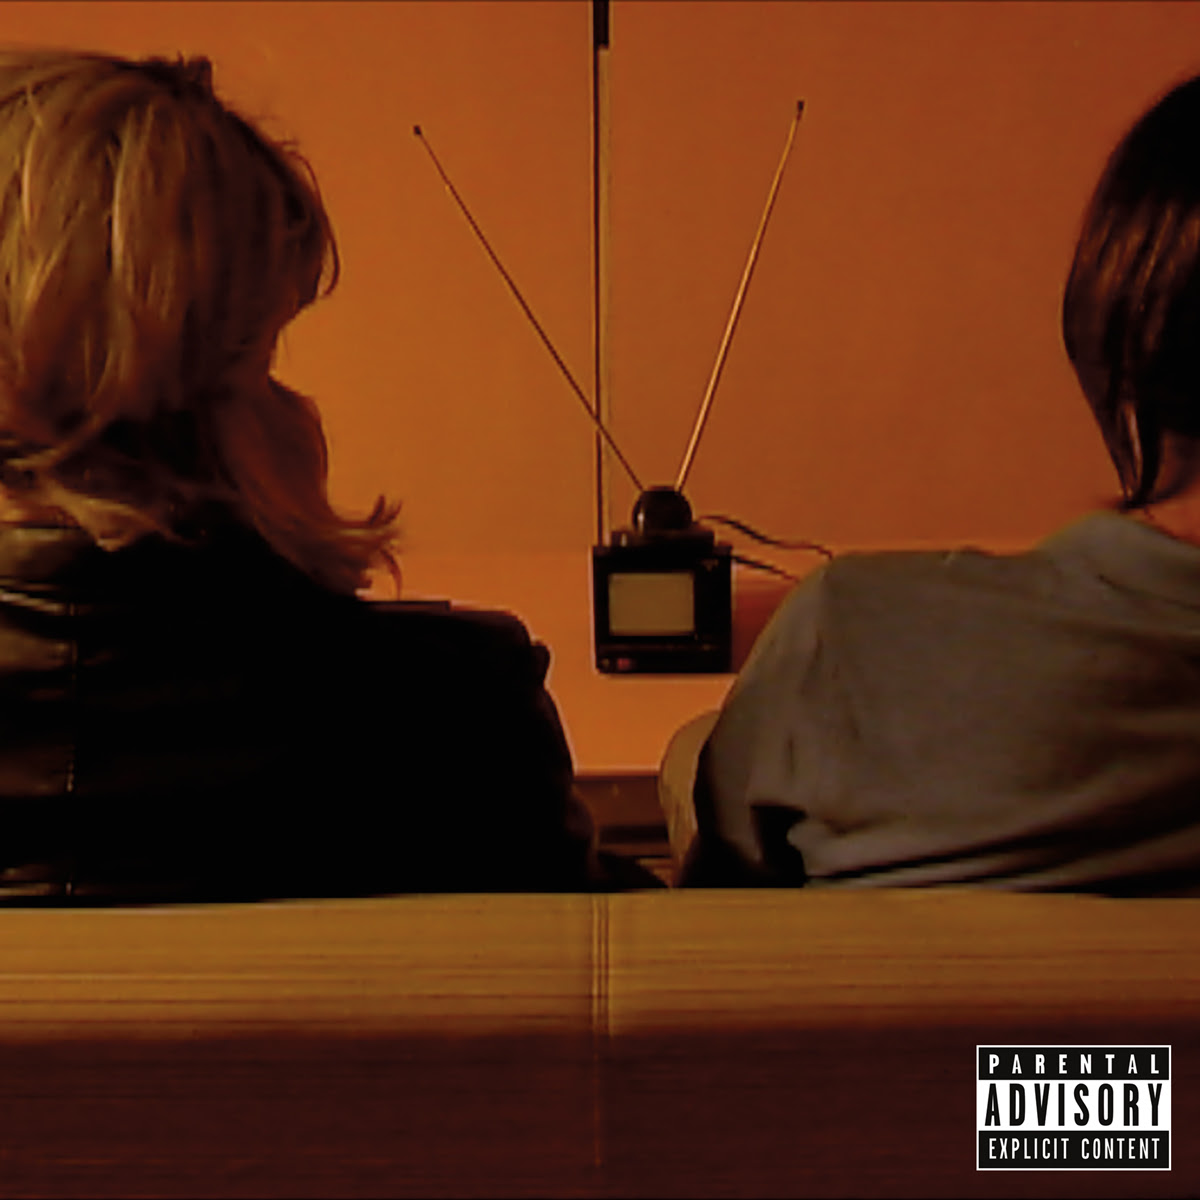 Connan Mockasin Jassbusters album cover artwork